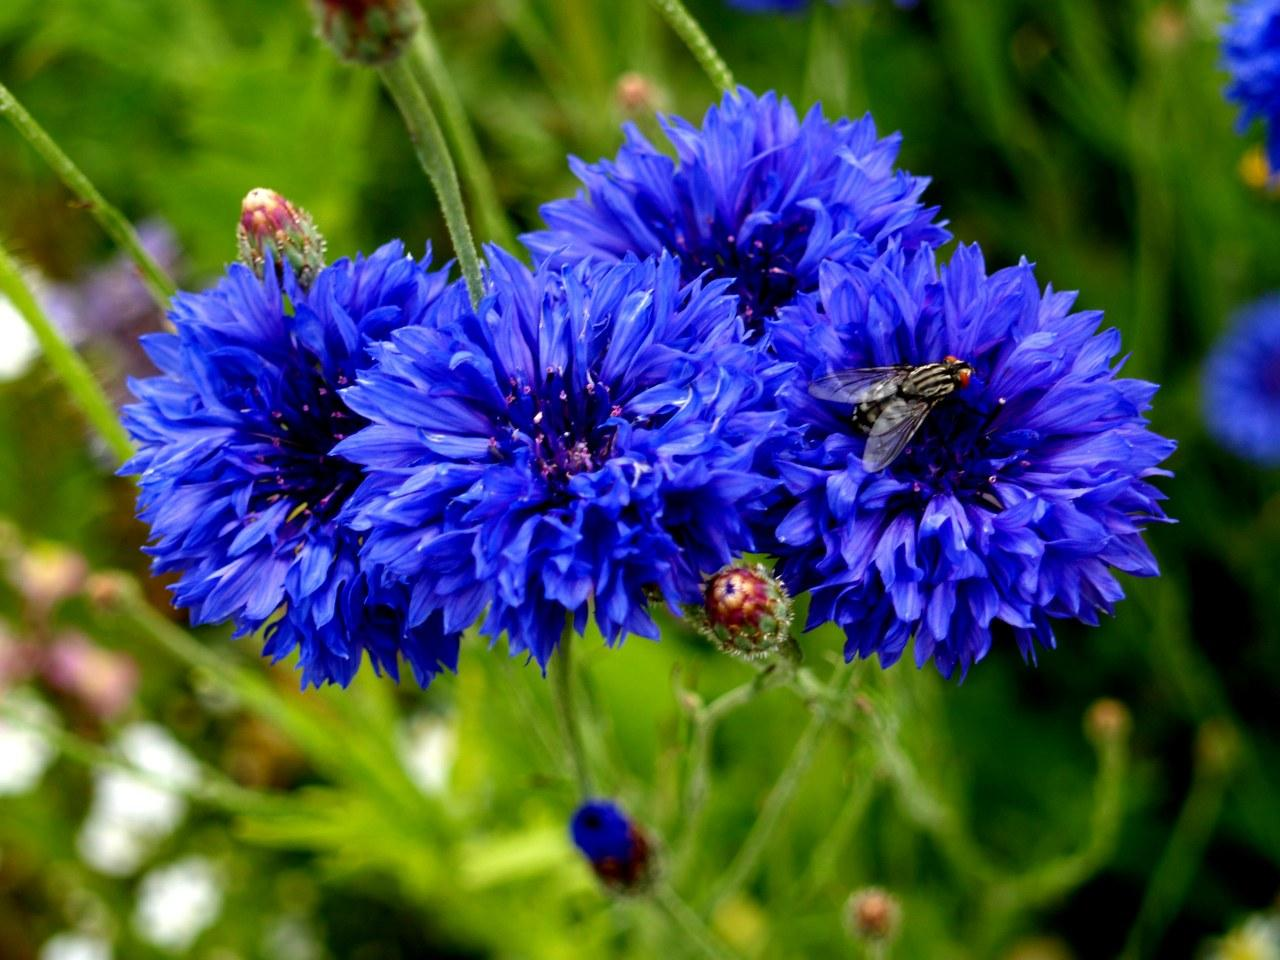 Cornflowers and fly.